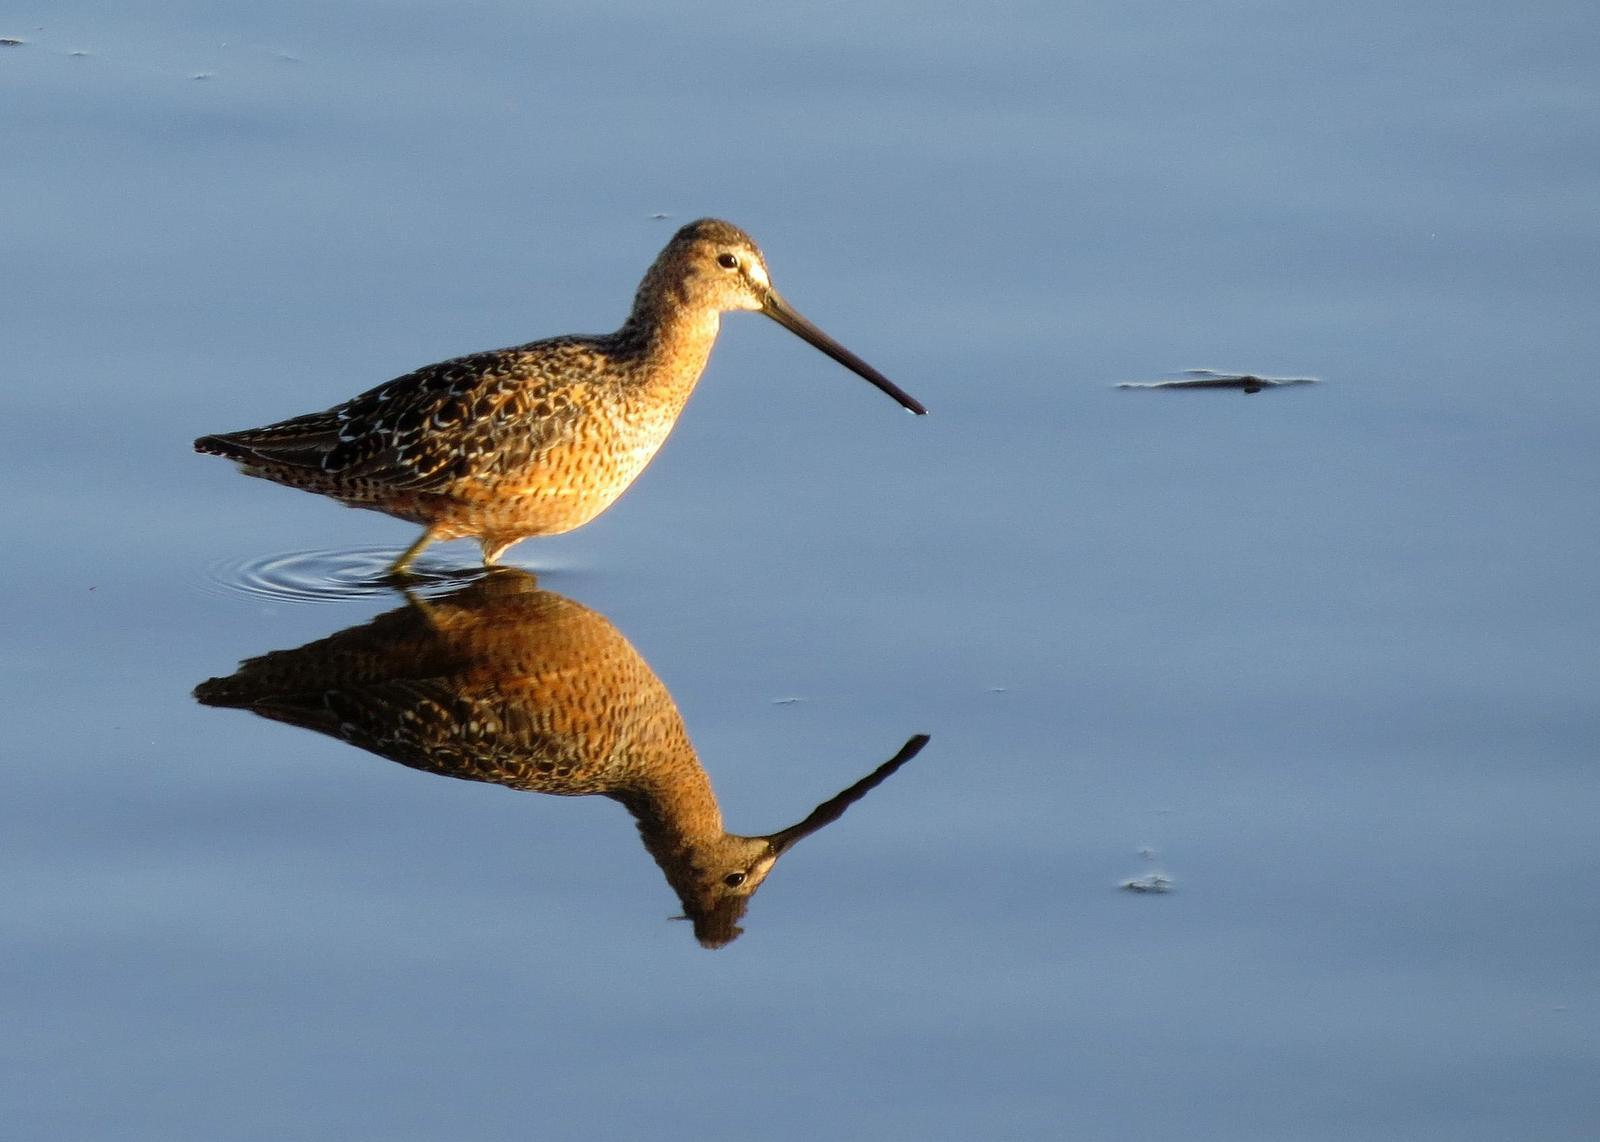 Long-billed Dowitcher Photo by Kelly Preheim